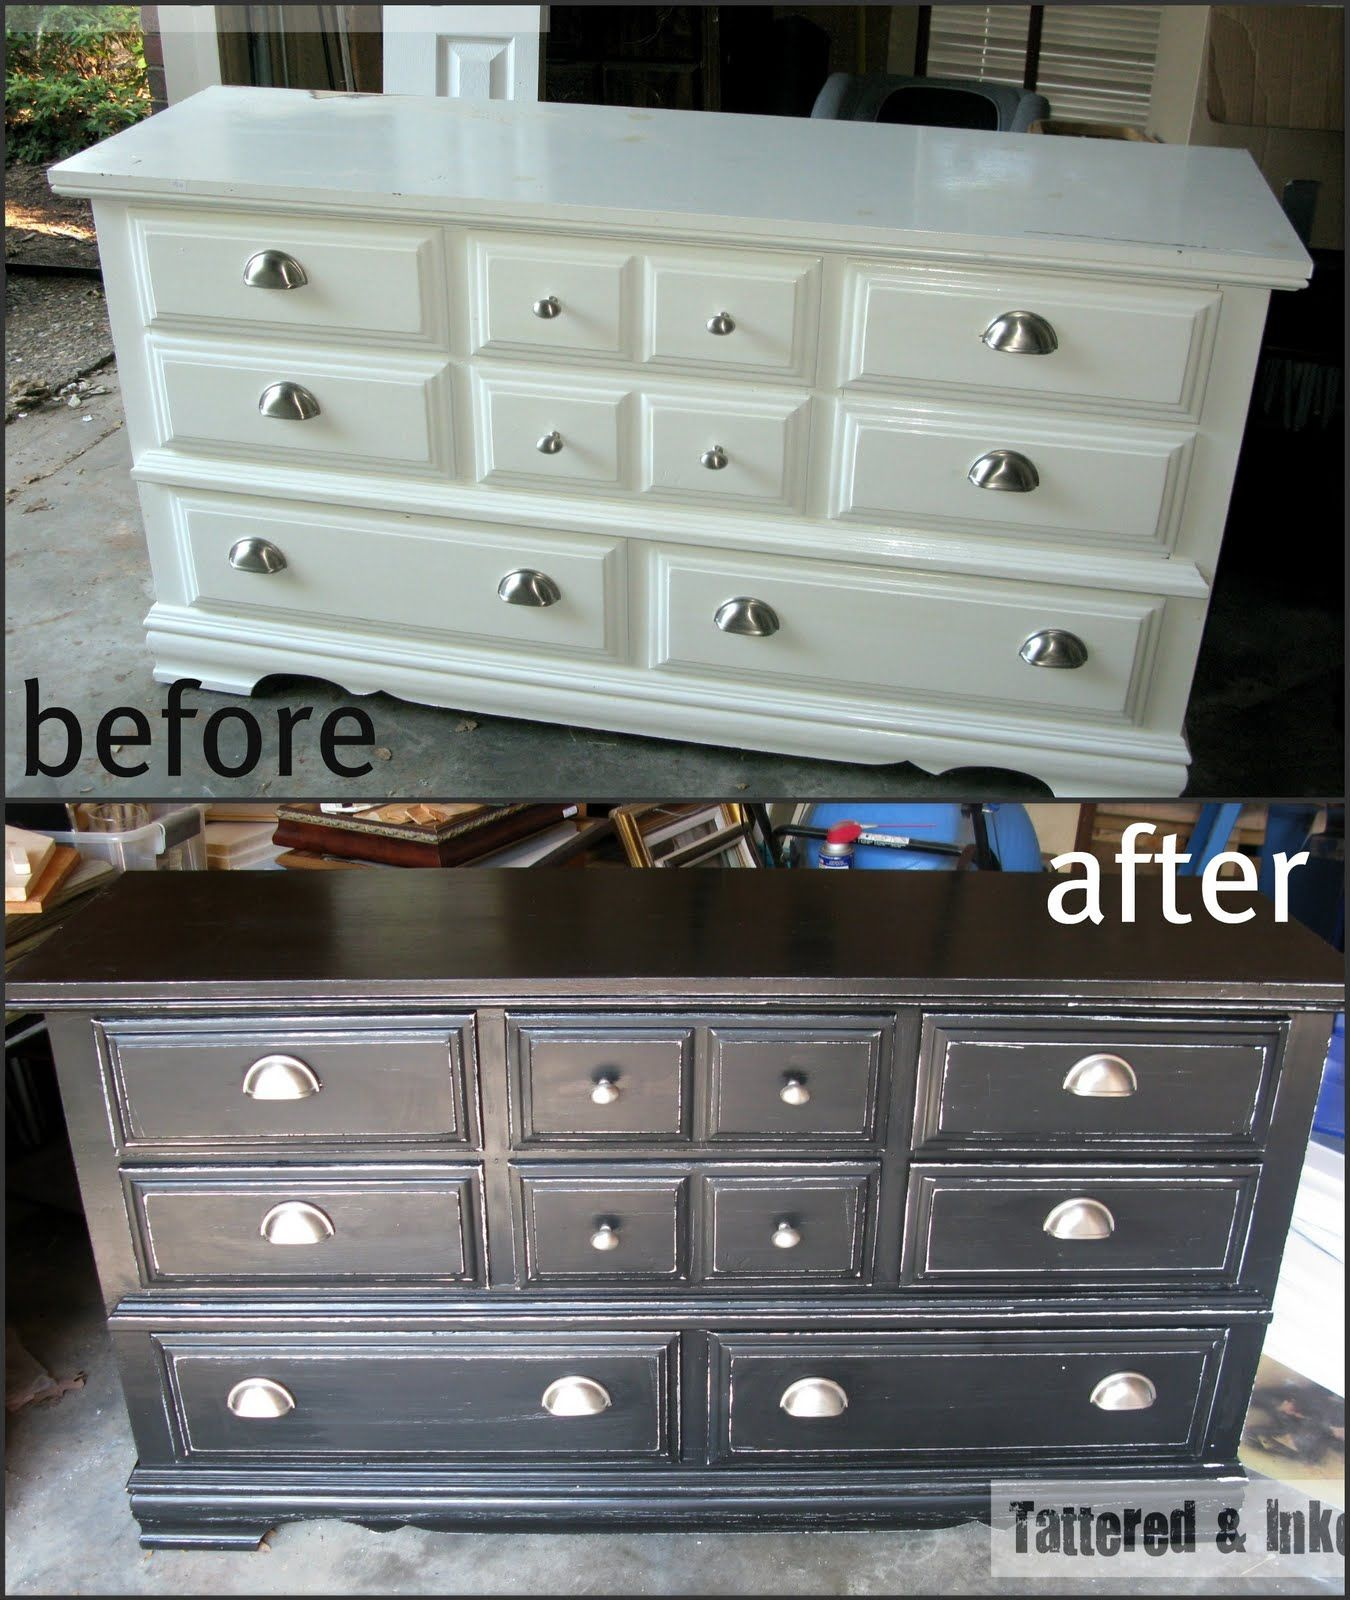 Tattered And Inked Black White Distressed Dresser Black Distressed Furniture White Dresser Diy Black And White Dresser [ 1600 x 1350 Pixel ]